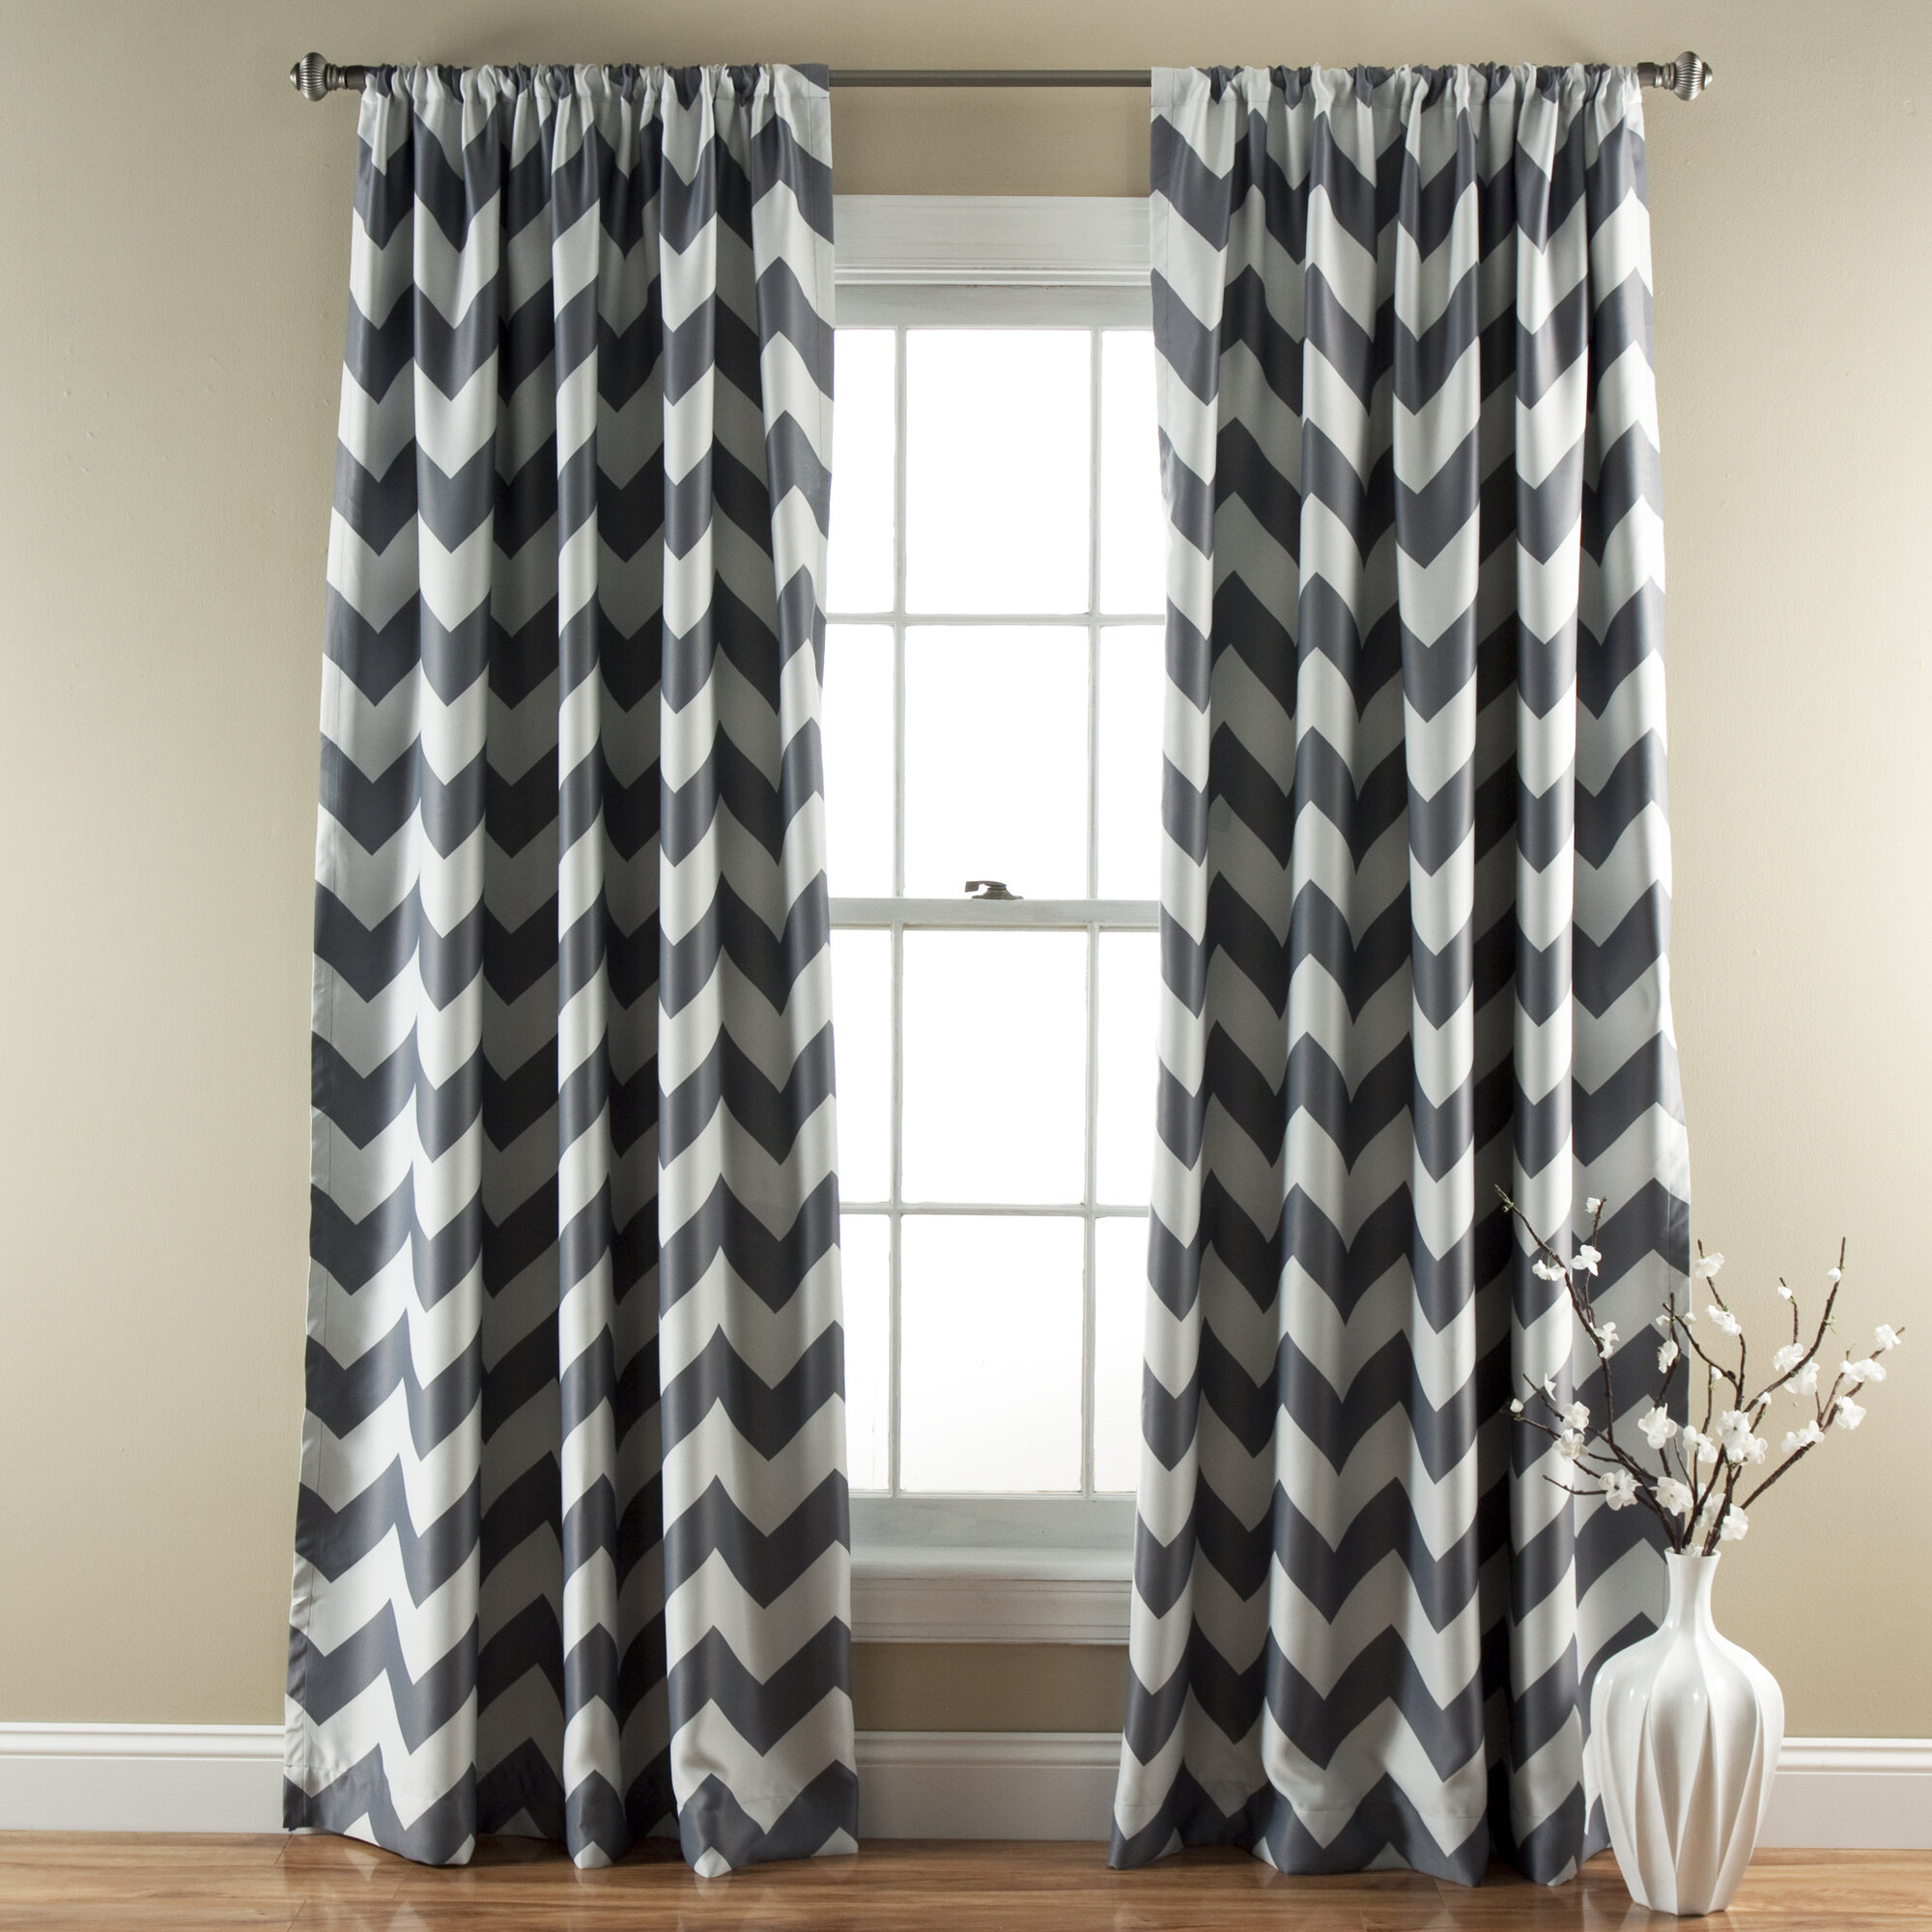 Special Edition by Lush Decor Chevron Blackout Curtain Panels